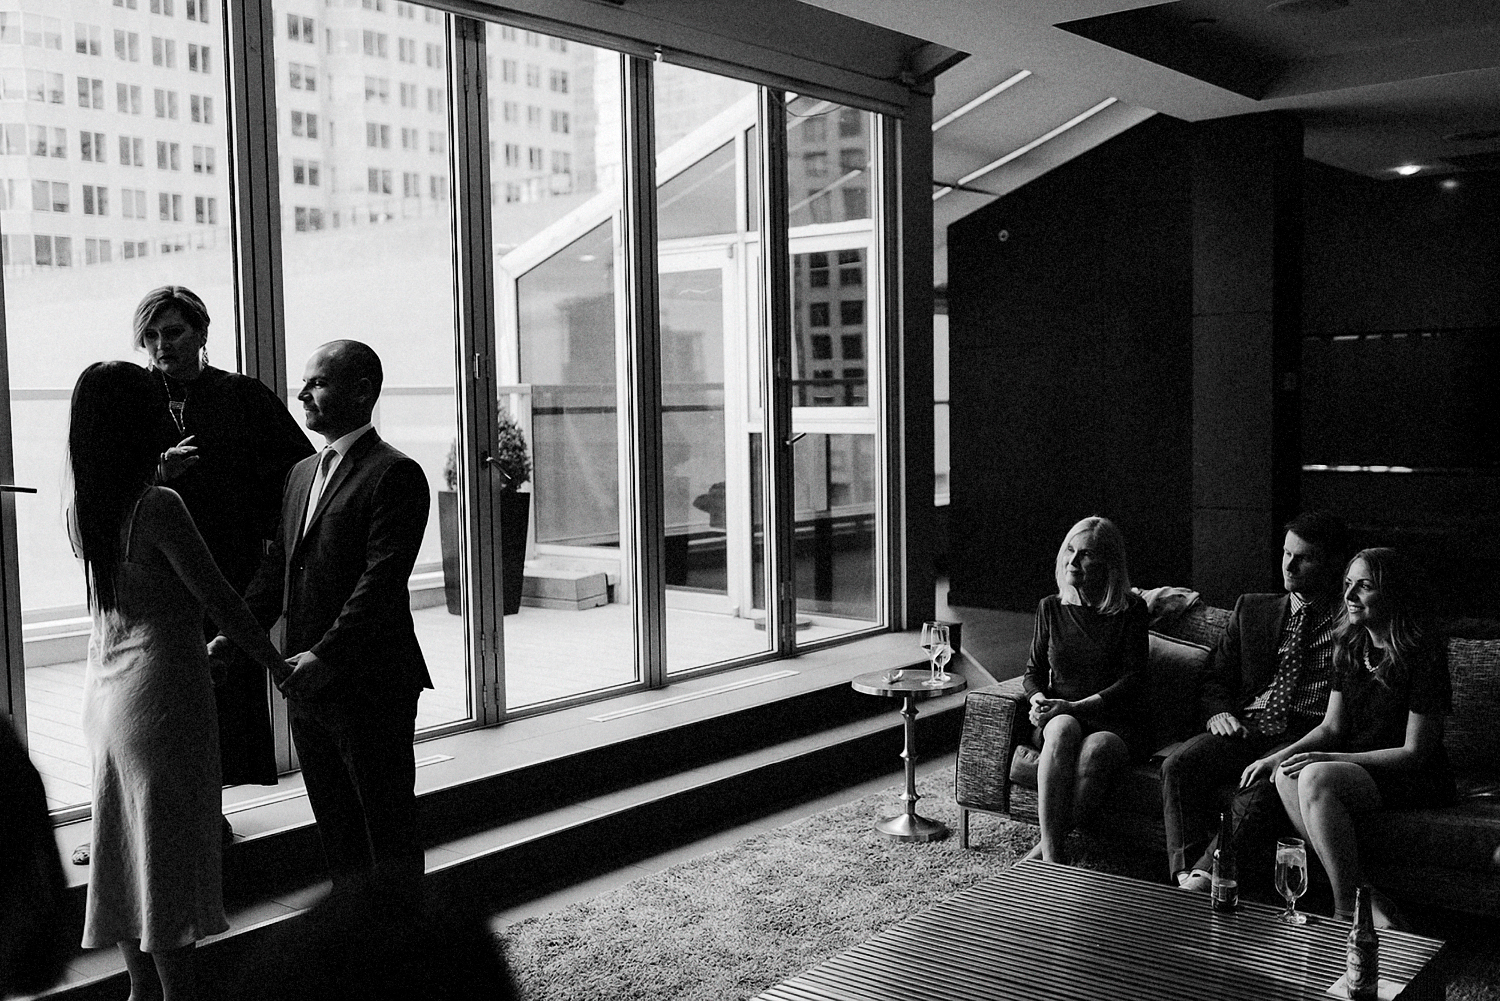 31-Best-Wedding-Photographers-in-Toronto-3B-Photography-Editorial-Fine-Art-Analog-Wedding-Photography-One-King-West-Ceremony-Venue.jpg